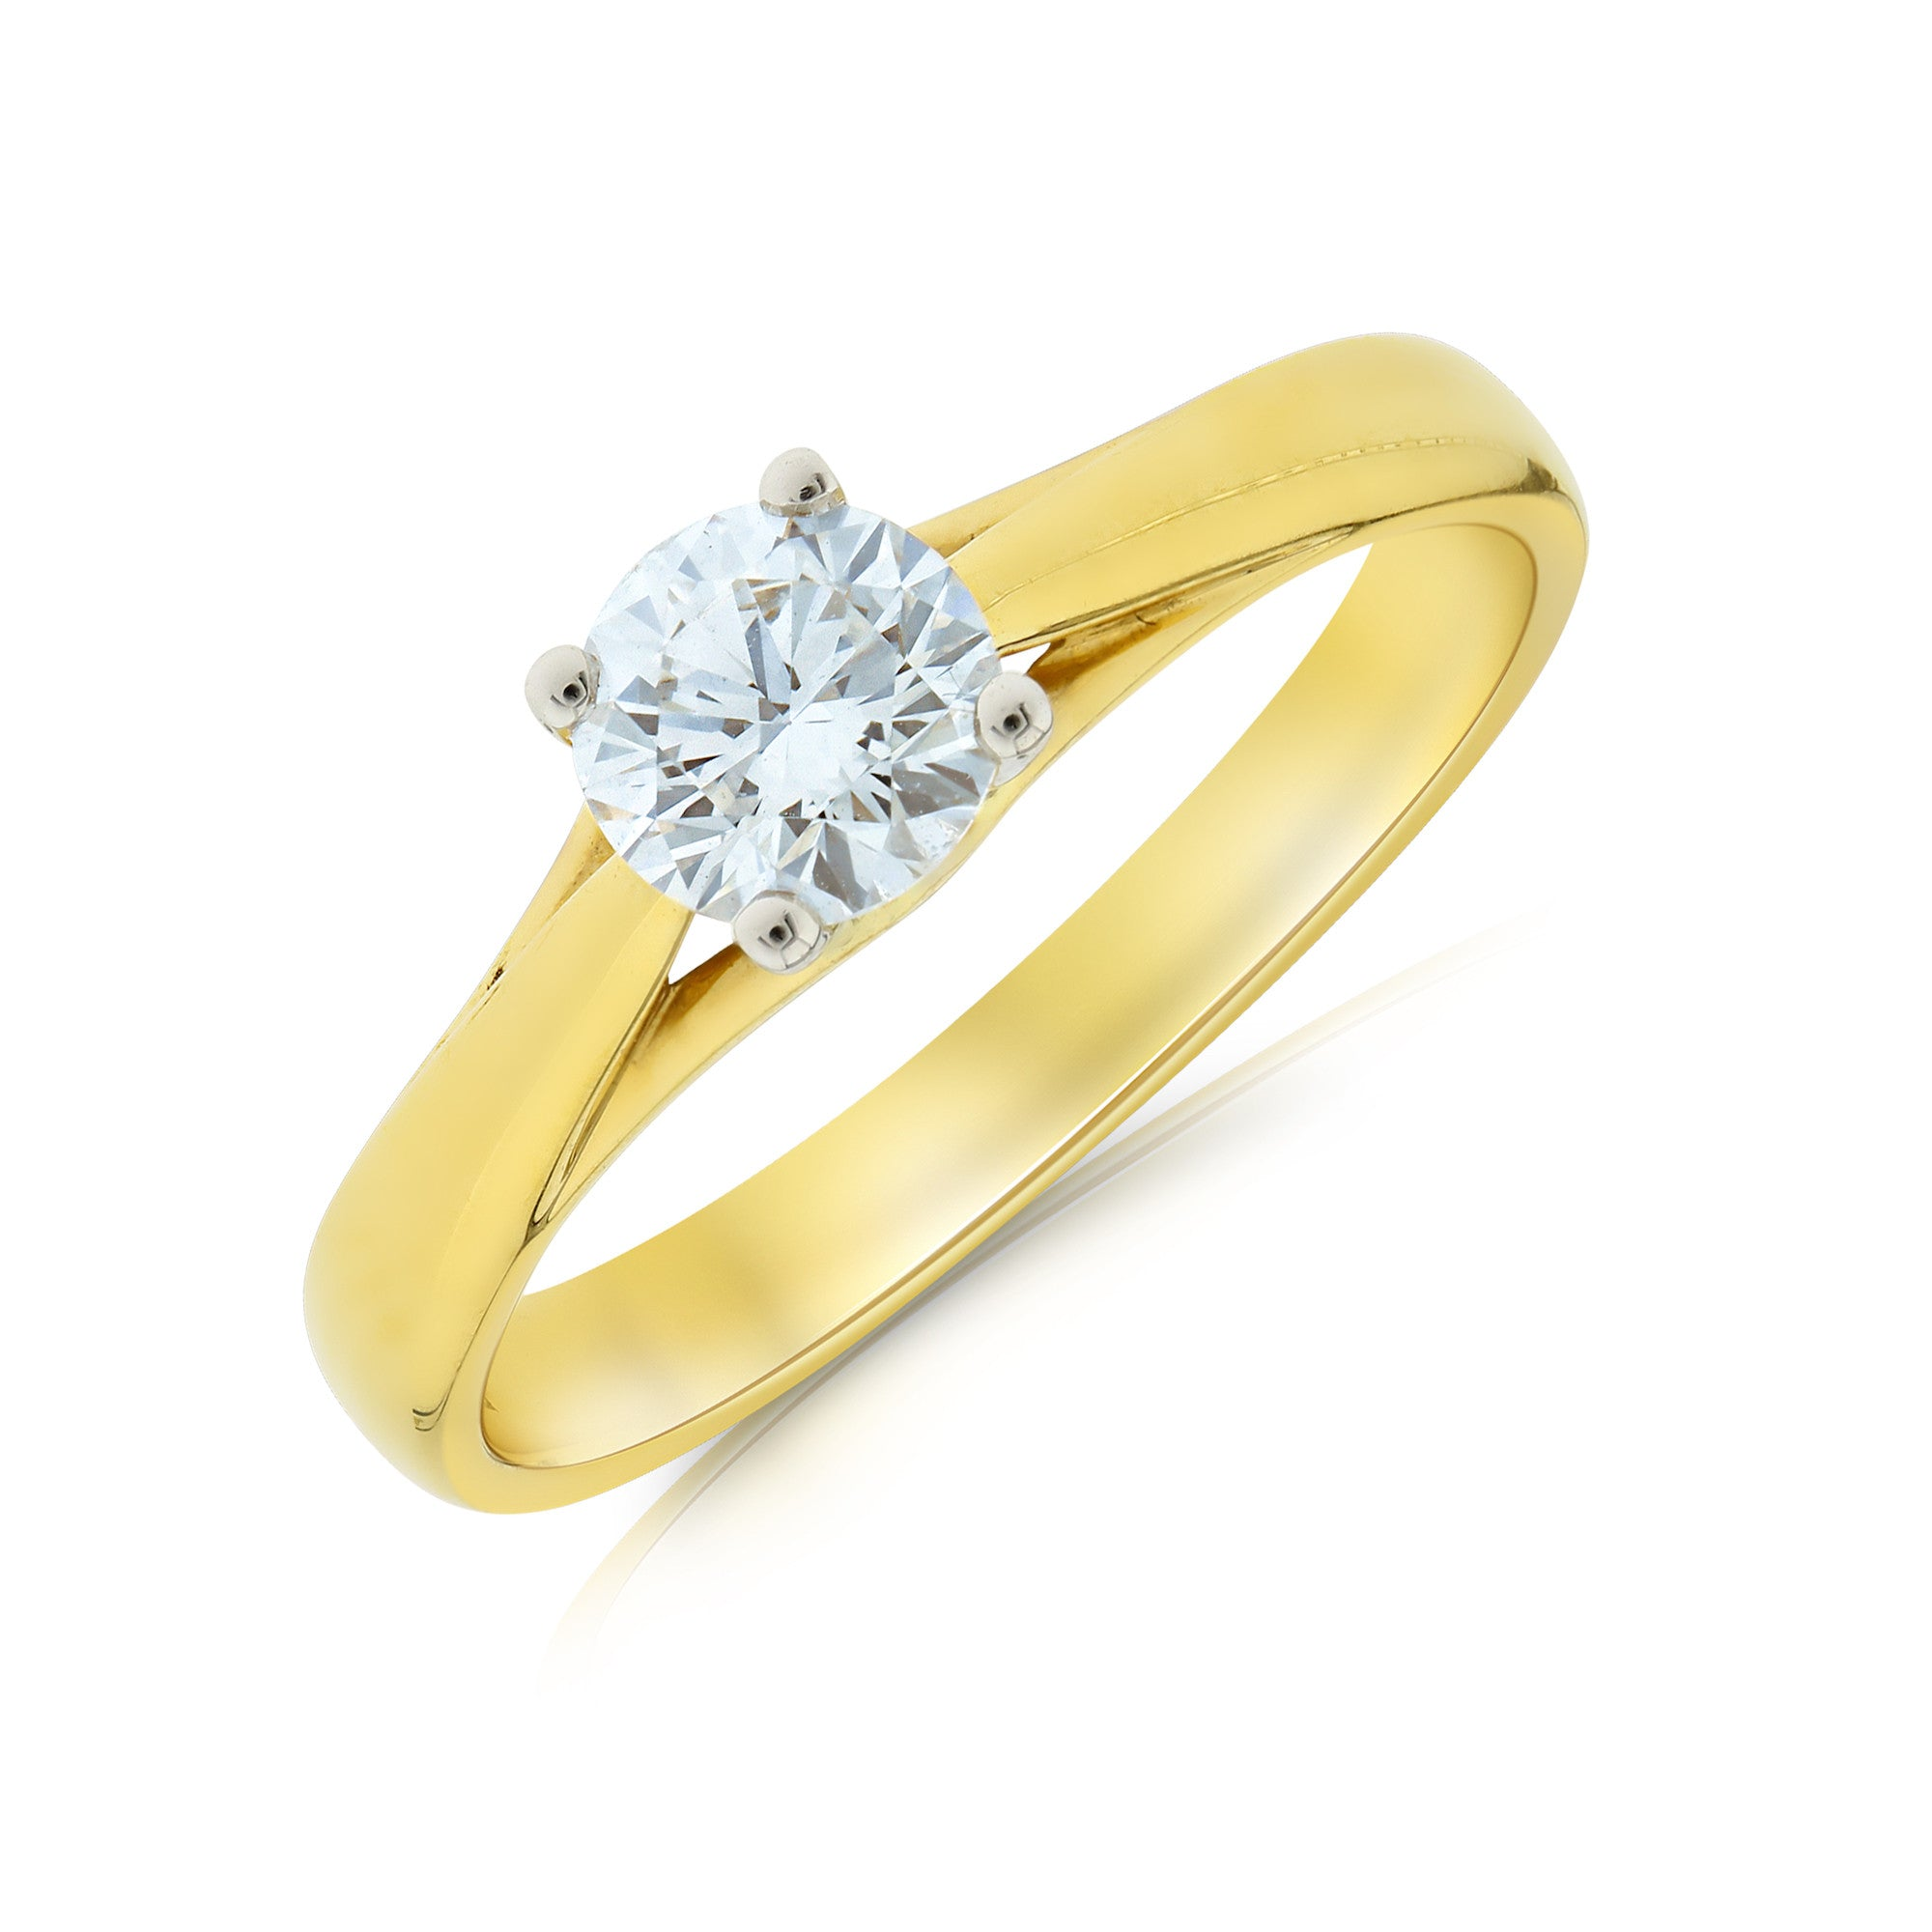 g yellow image loading is solitaire itm diamond carat cut clarity s gold oval color half vvs